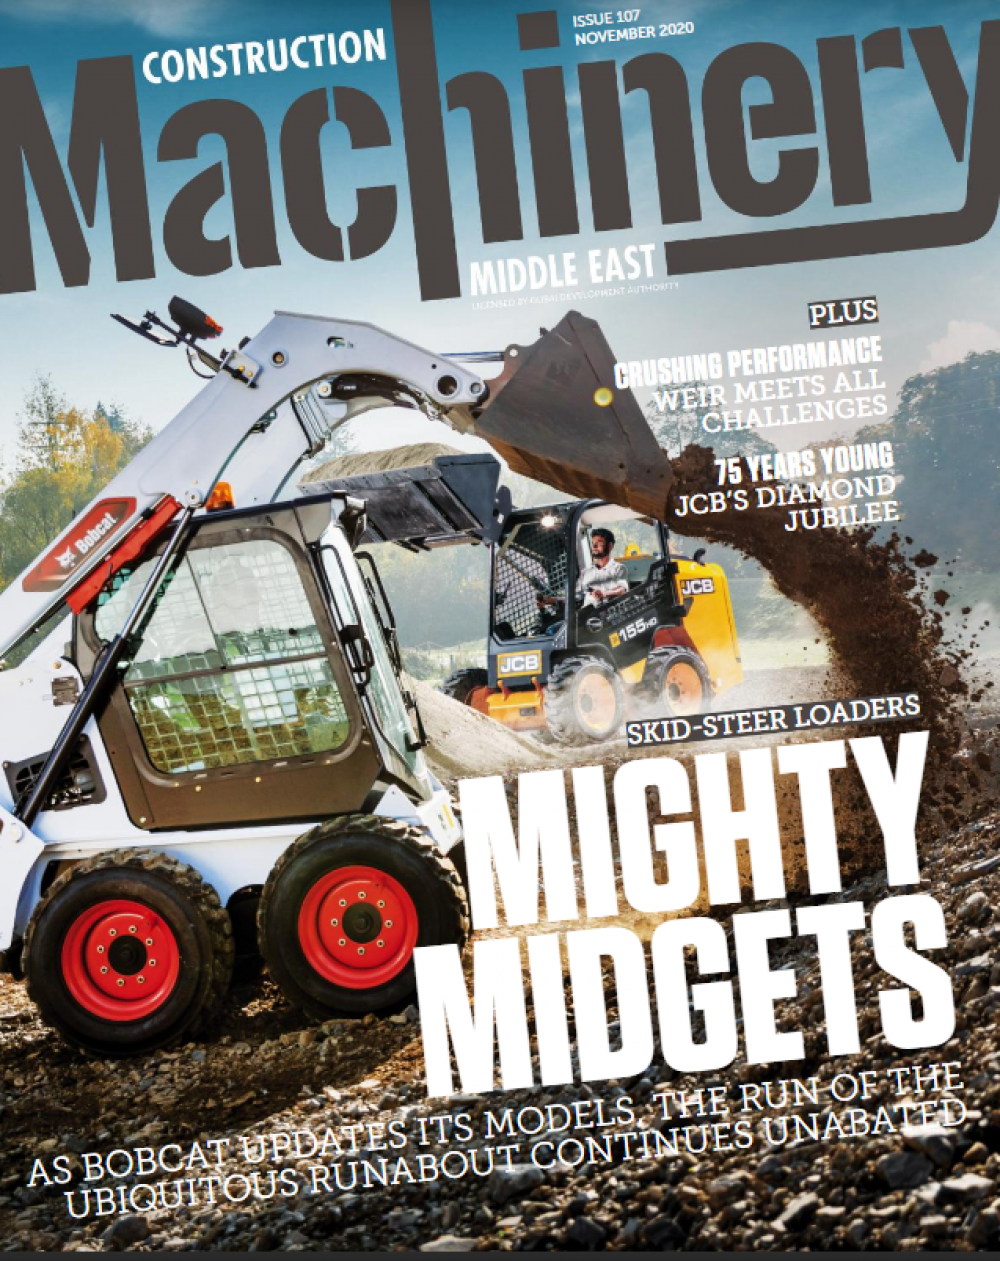 Construction Machinery November 2020 Issue